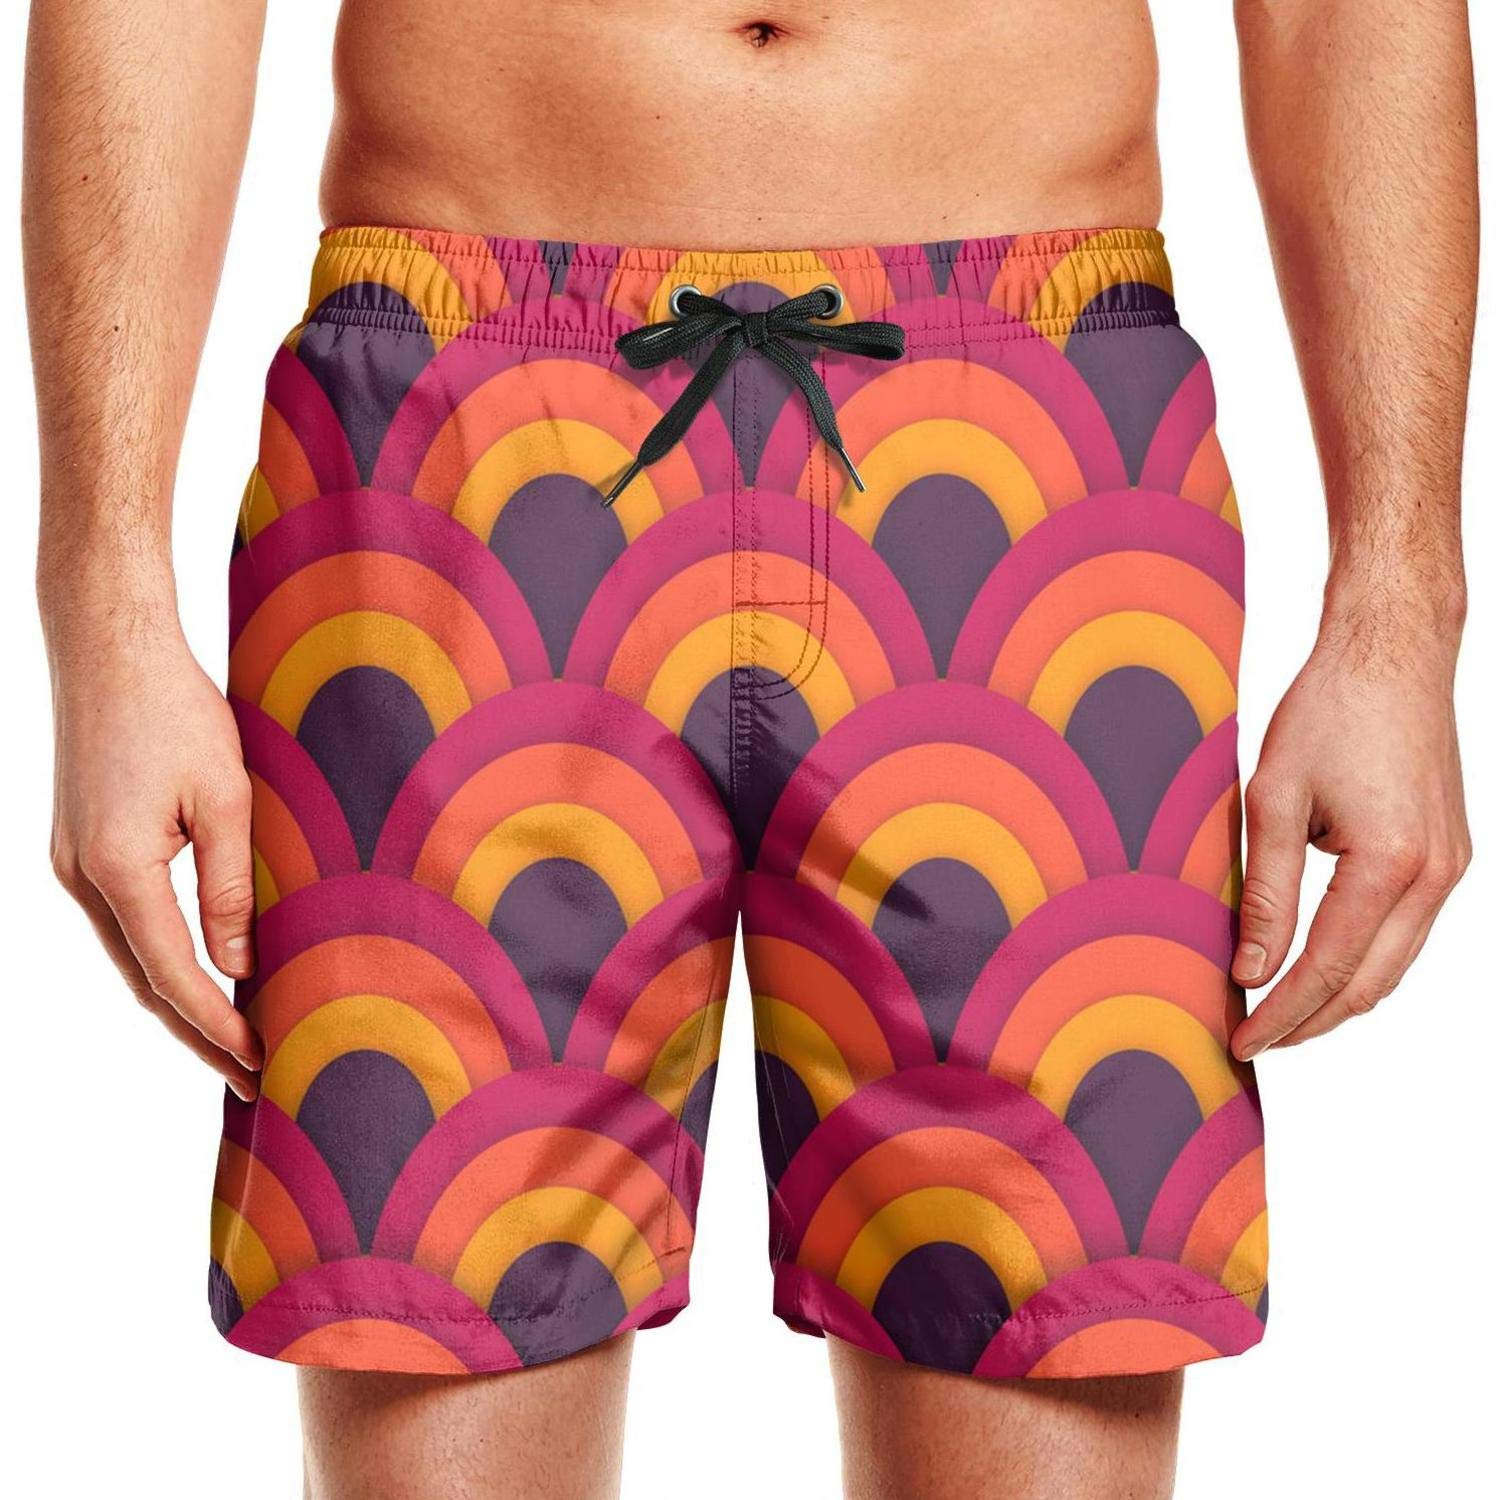 chchht Mens Beach Shorts Psychedelic Asian Seamless Stretch Board Swim Side Pockets Board Shorts